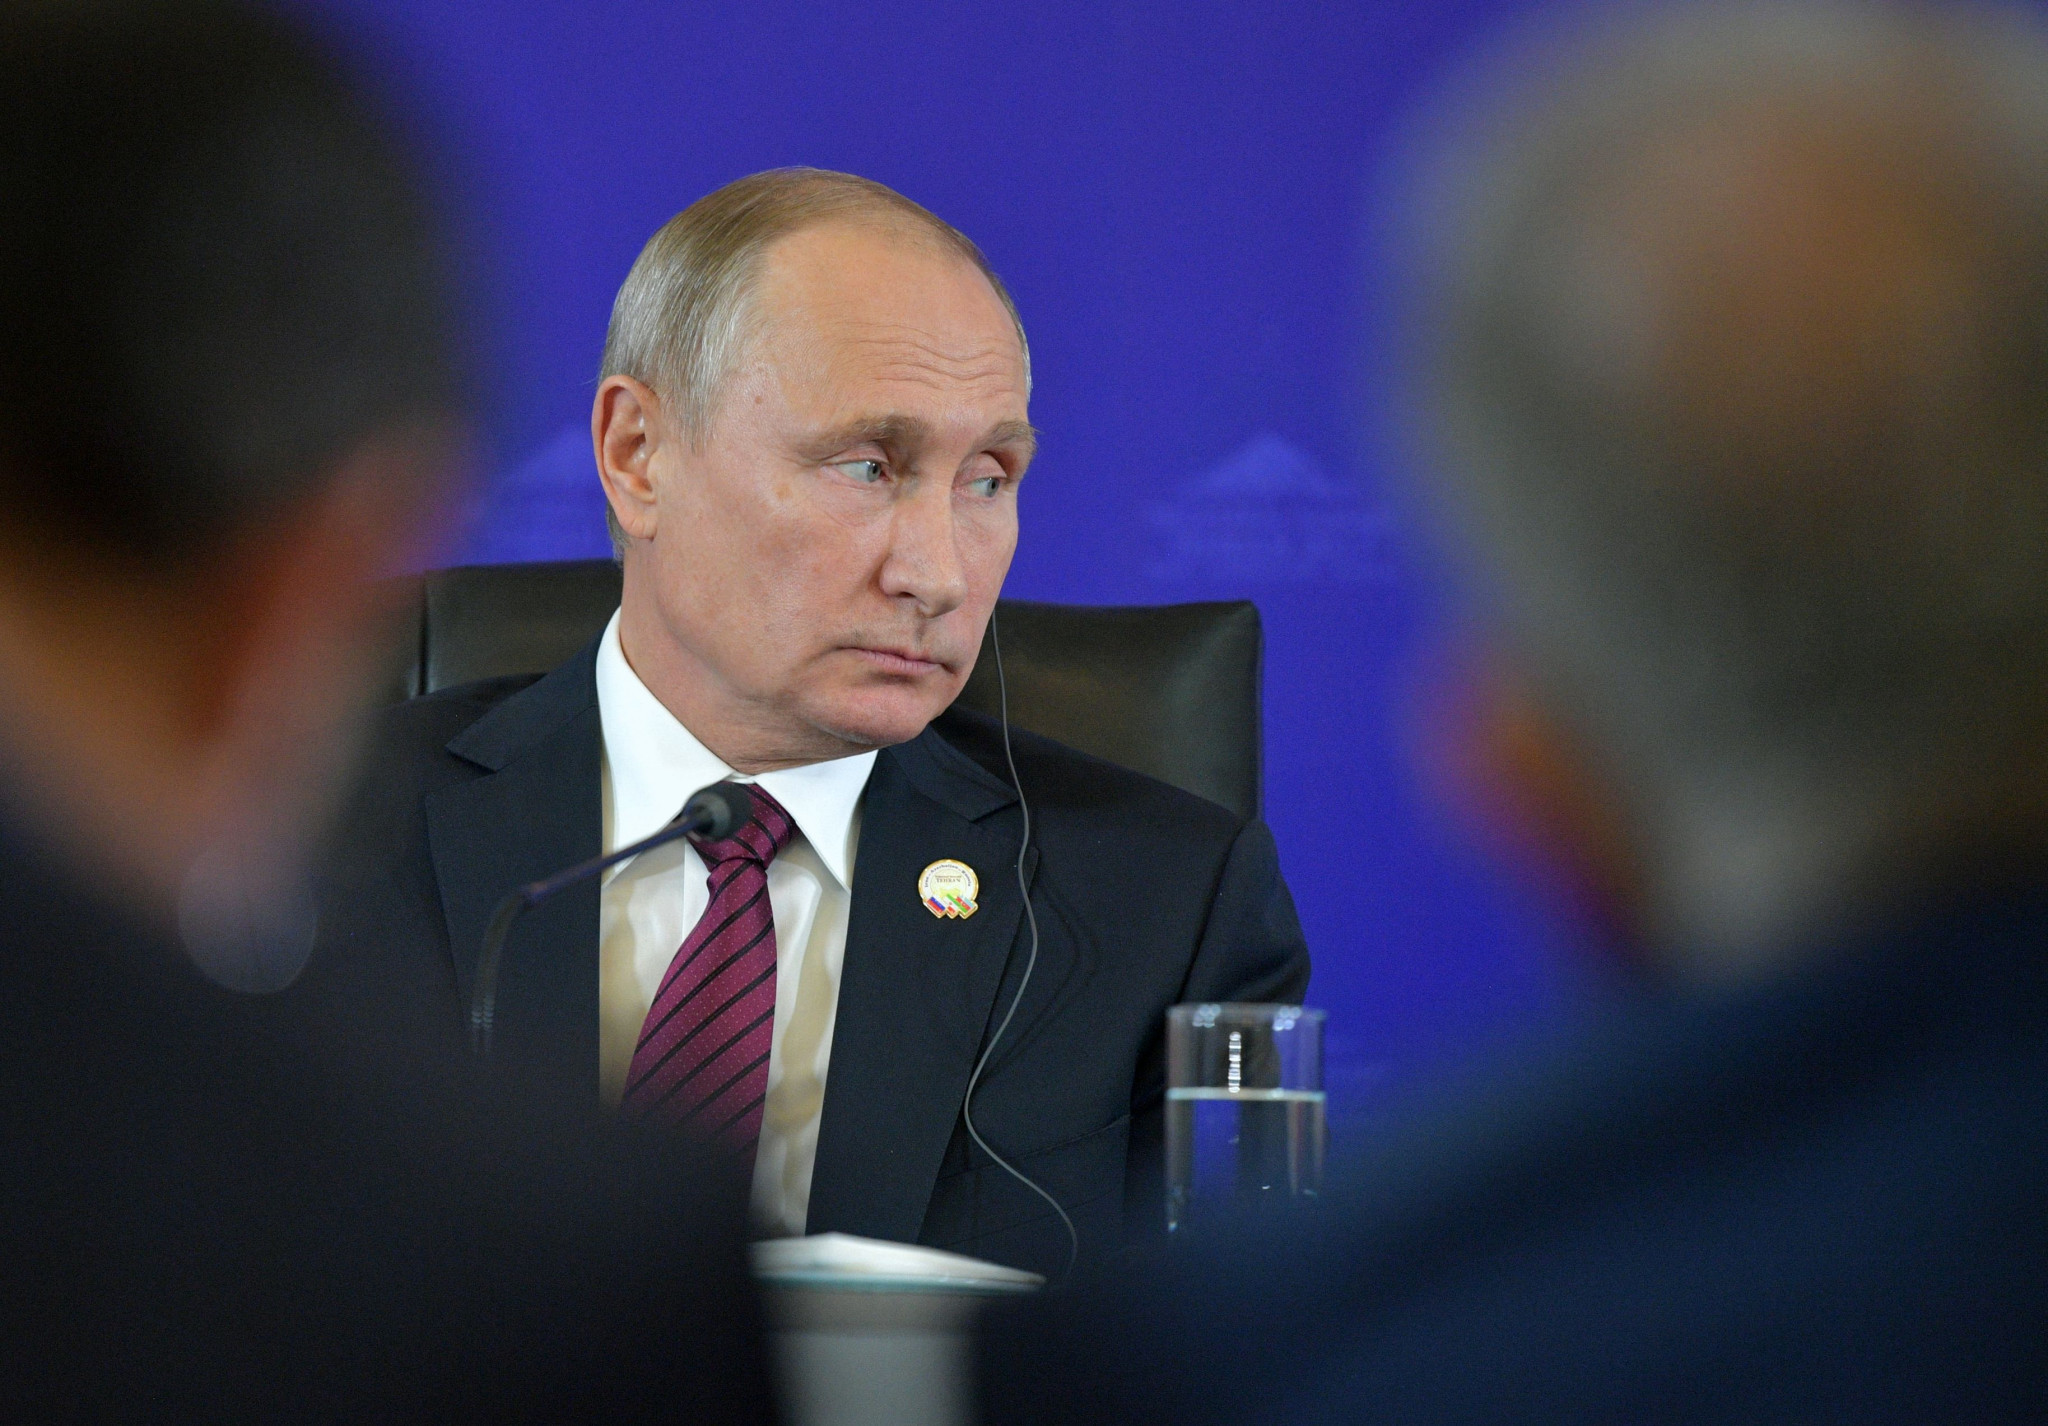 Vladimir Putin has denied state-sponsored doping in Russia ©Getty Images